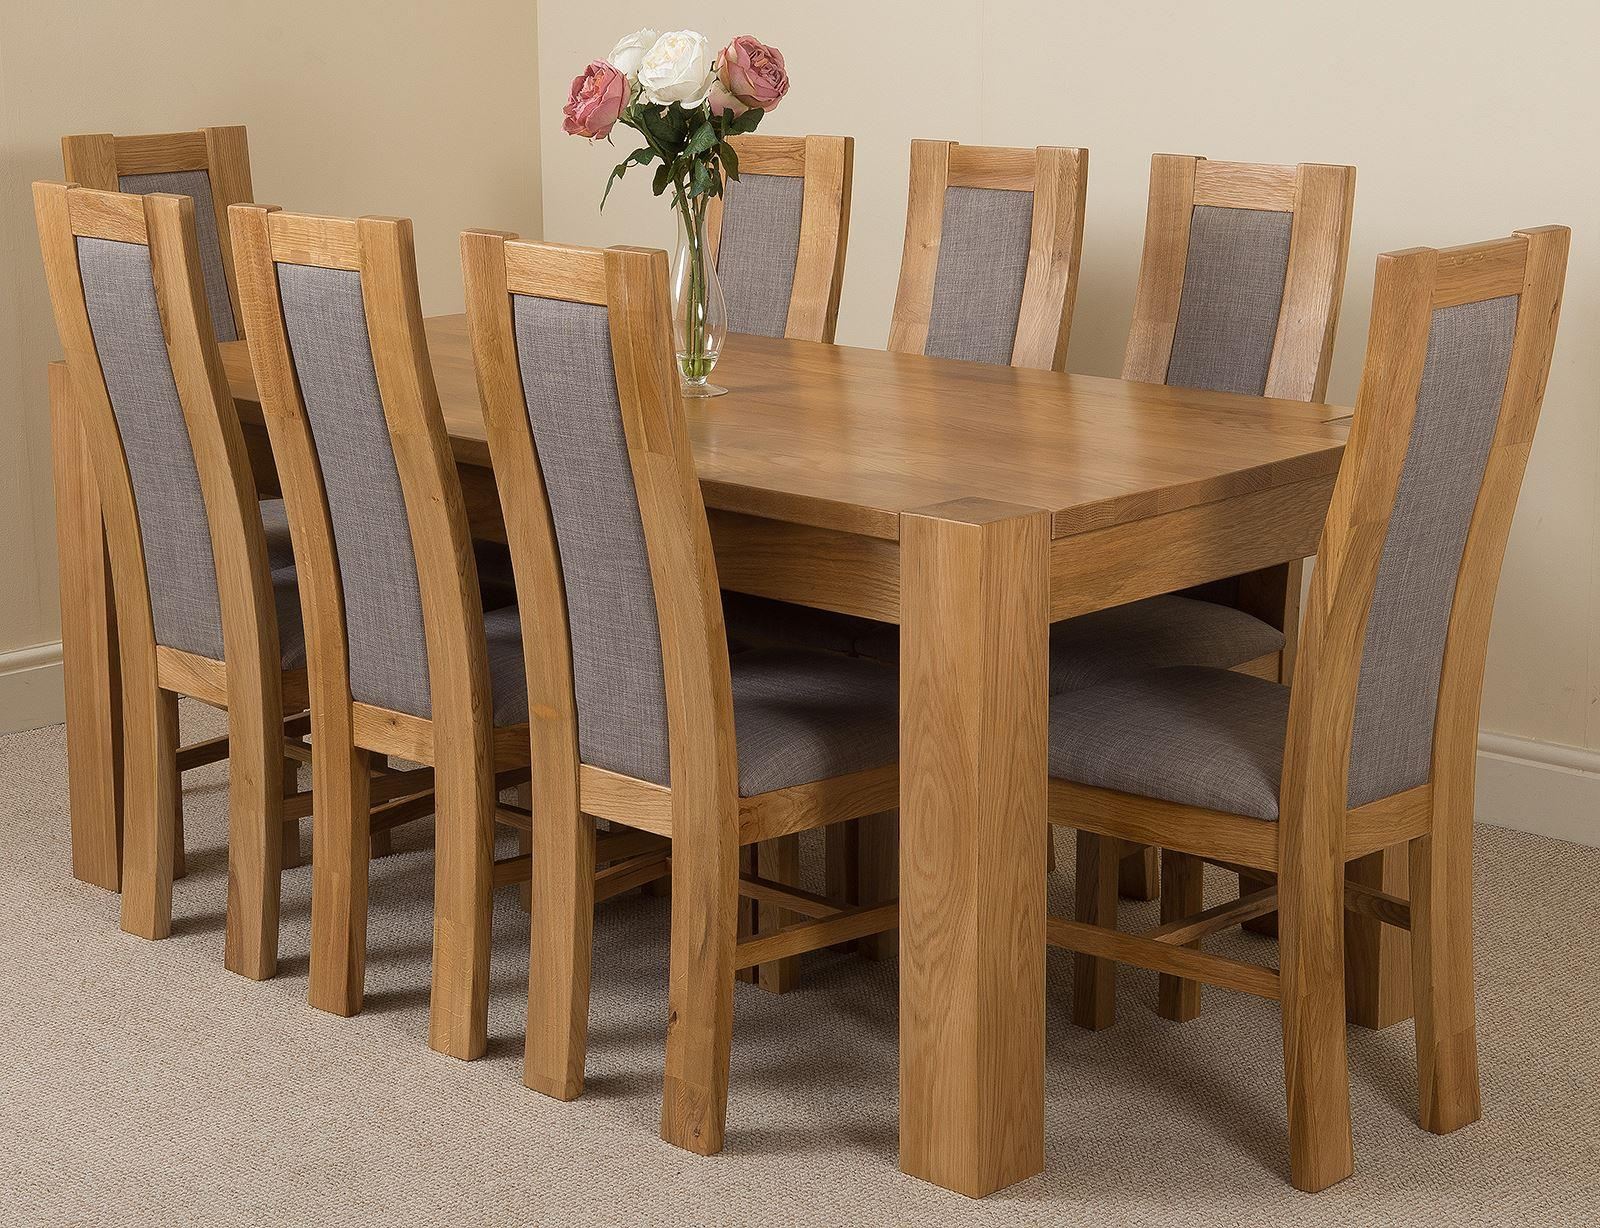 Kuba Solid Oak Dining Table & 8 Stanford Solid Oak Fabric Chairs